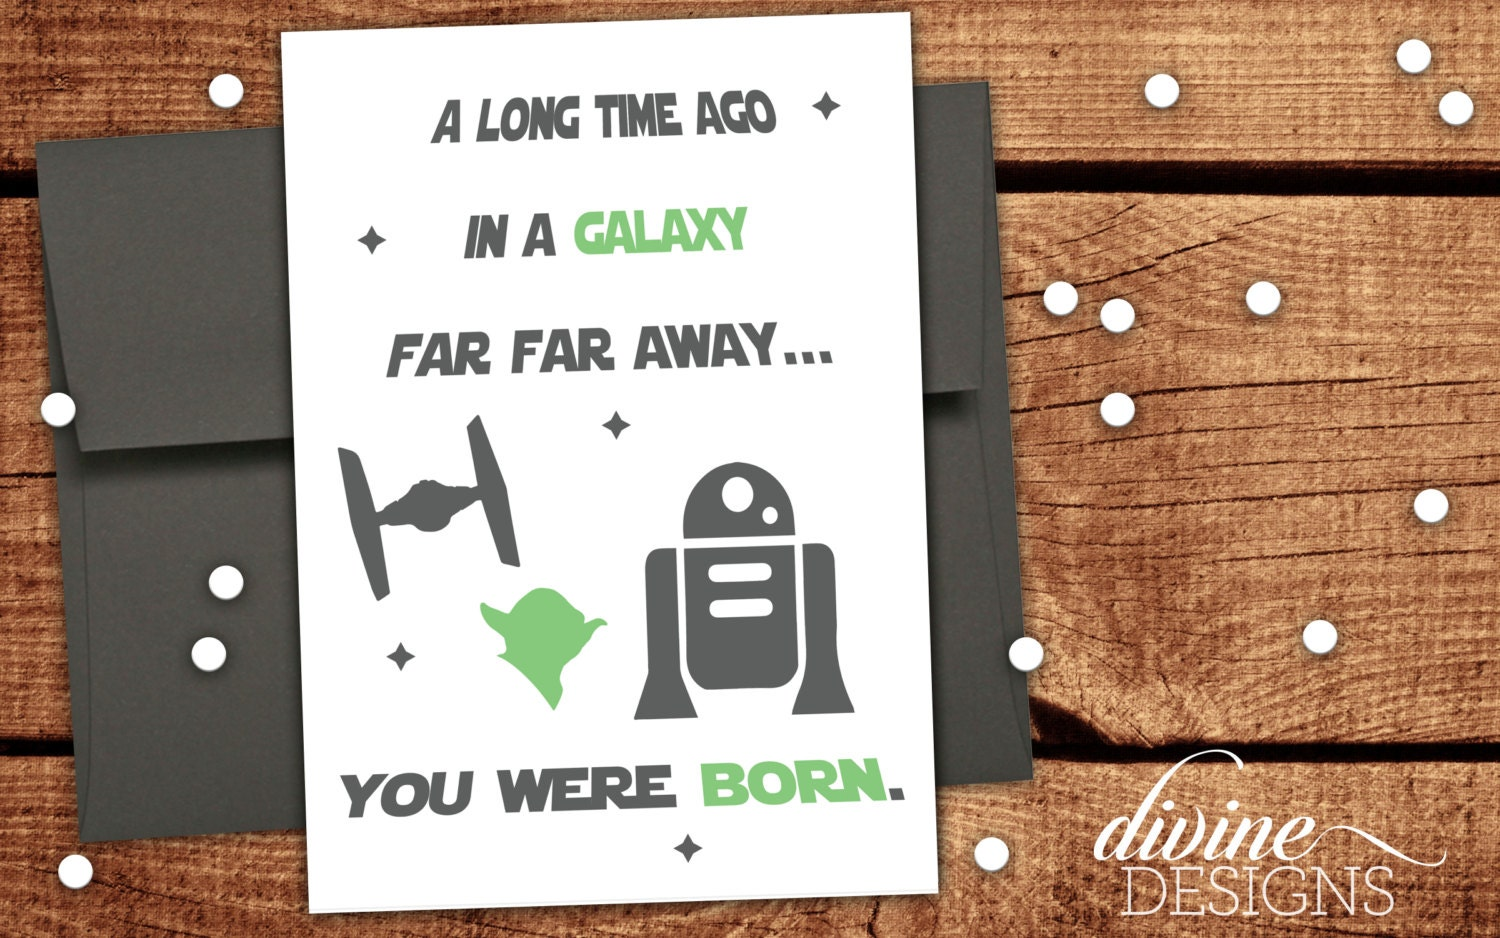 Friends Tv Show Quotes About Friendship Entrancing A Long Time Ago In A Galaxy Far Far Away.you Were Born.